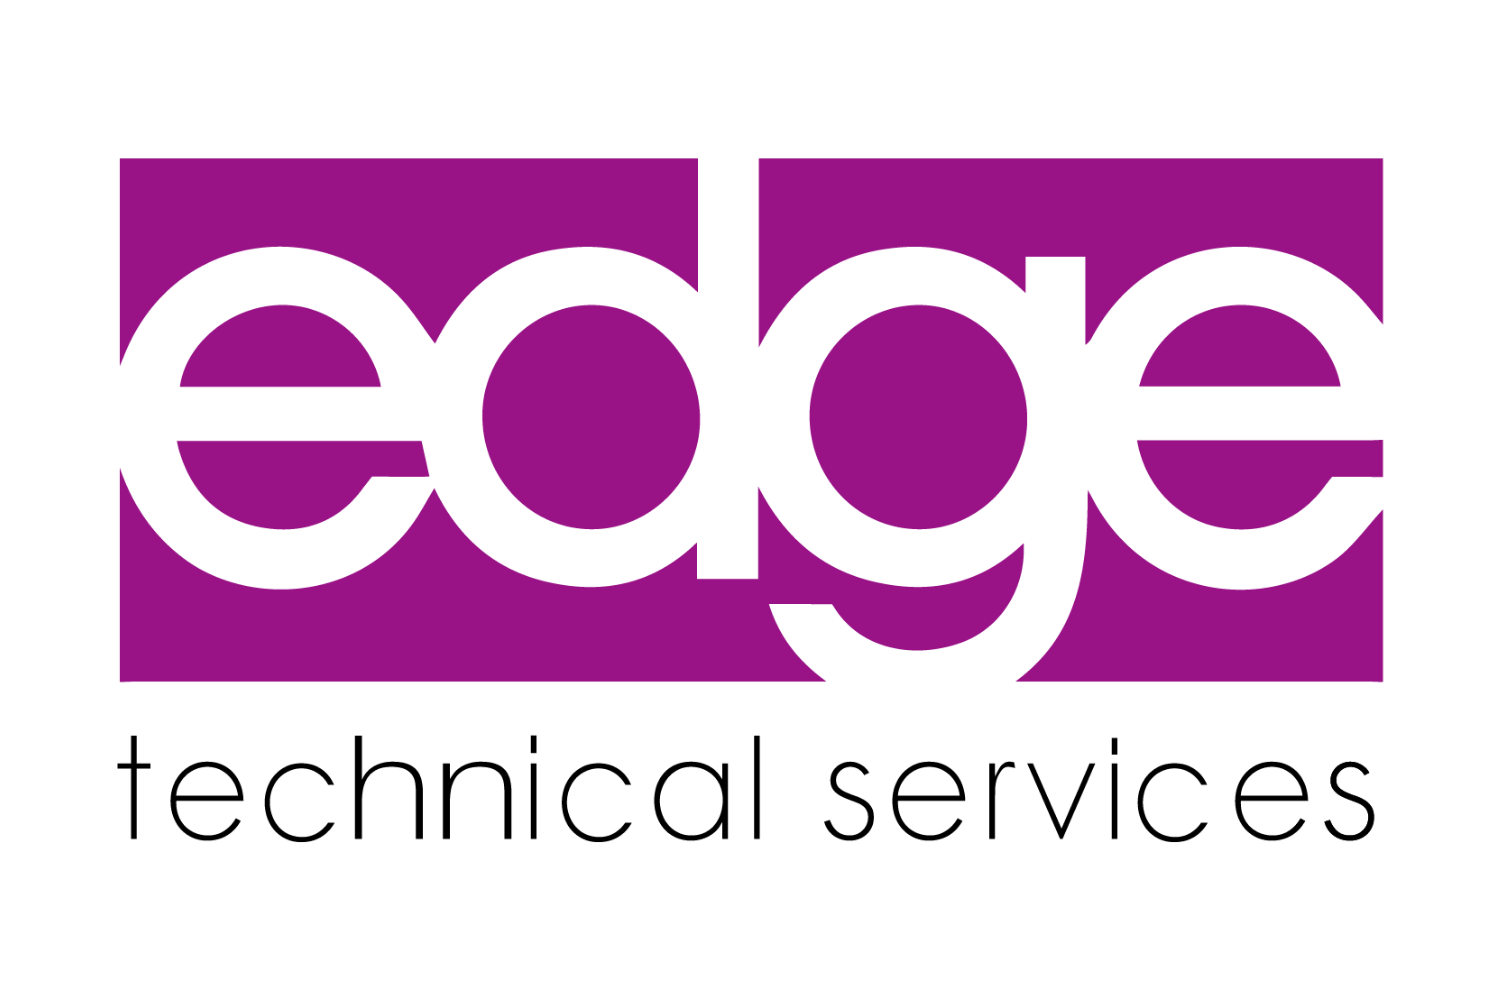 Edge Technical Services Ltd.